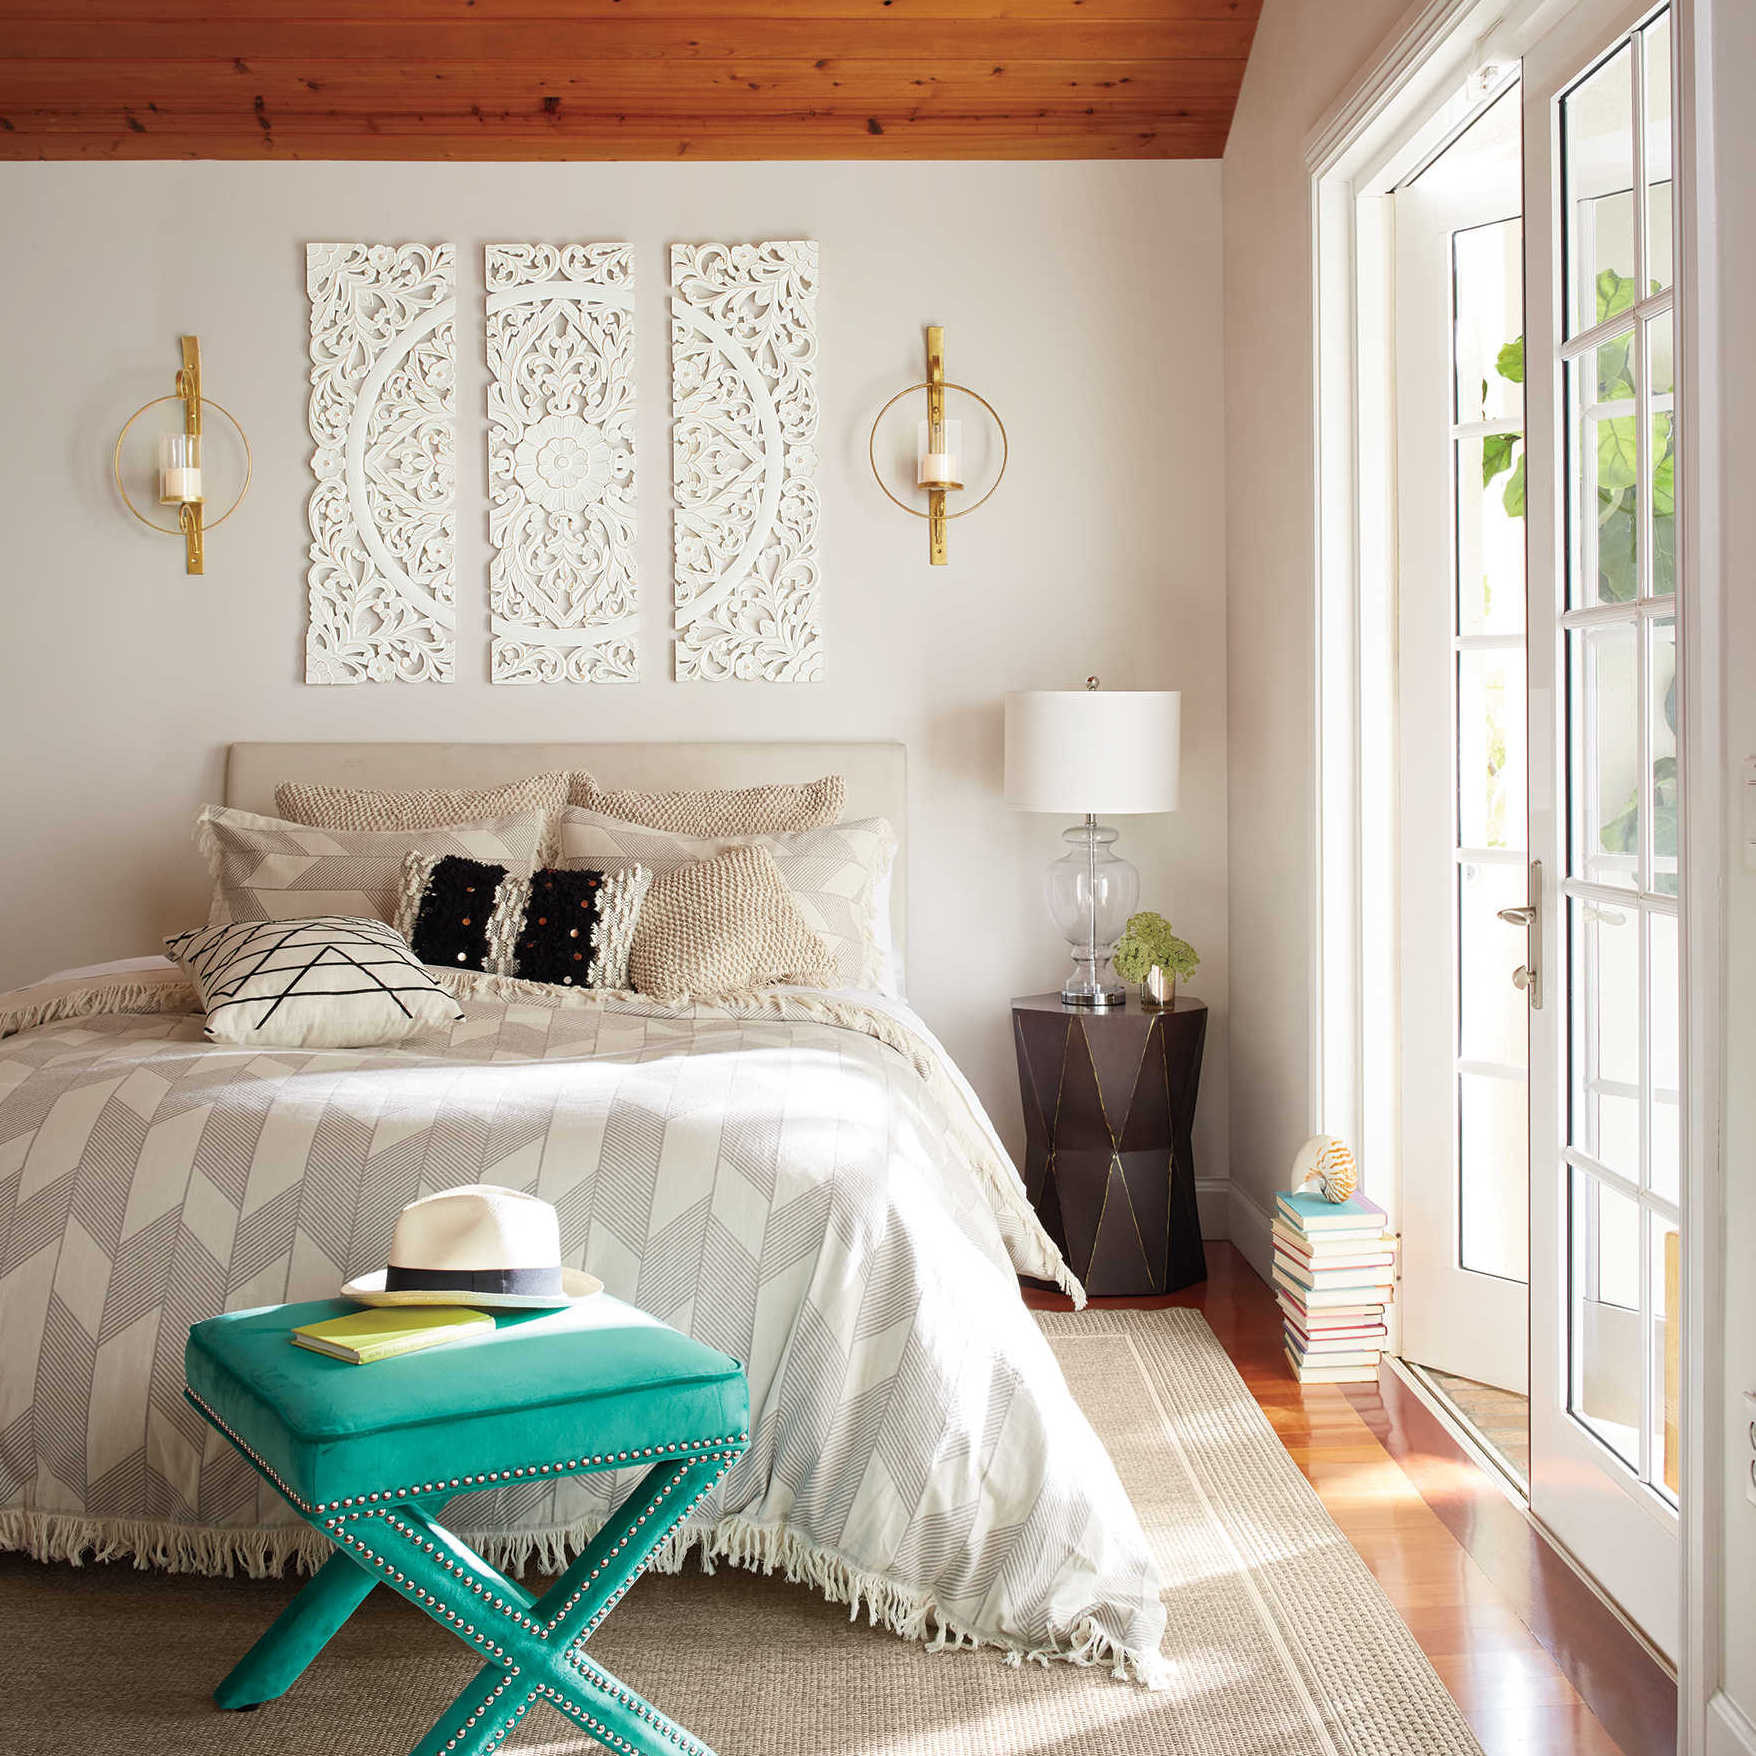 Sizing Up Your Bedroom | Bed Bath & Beyond